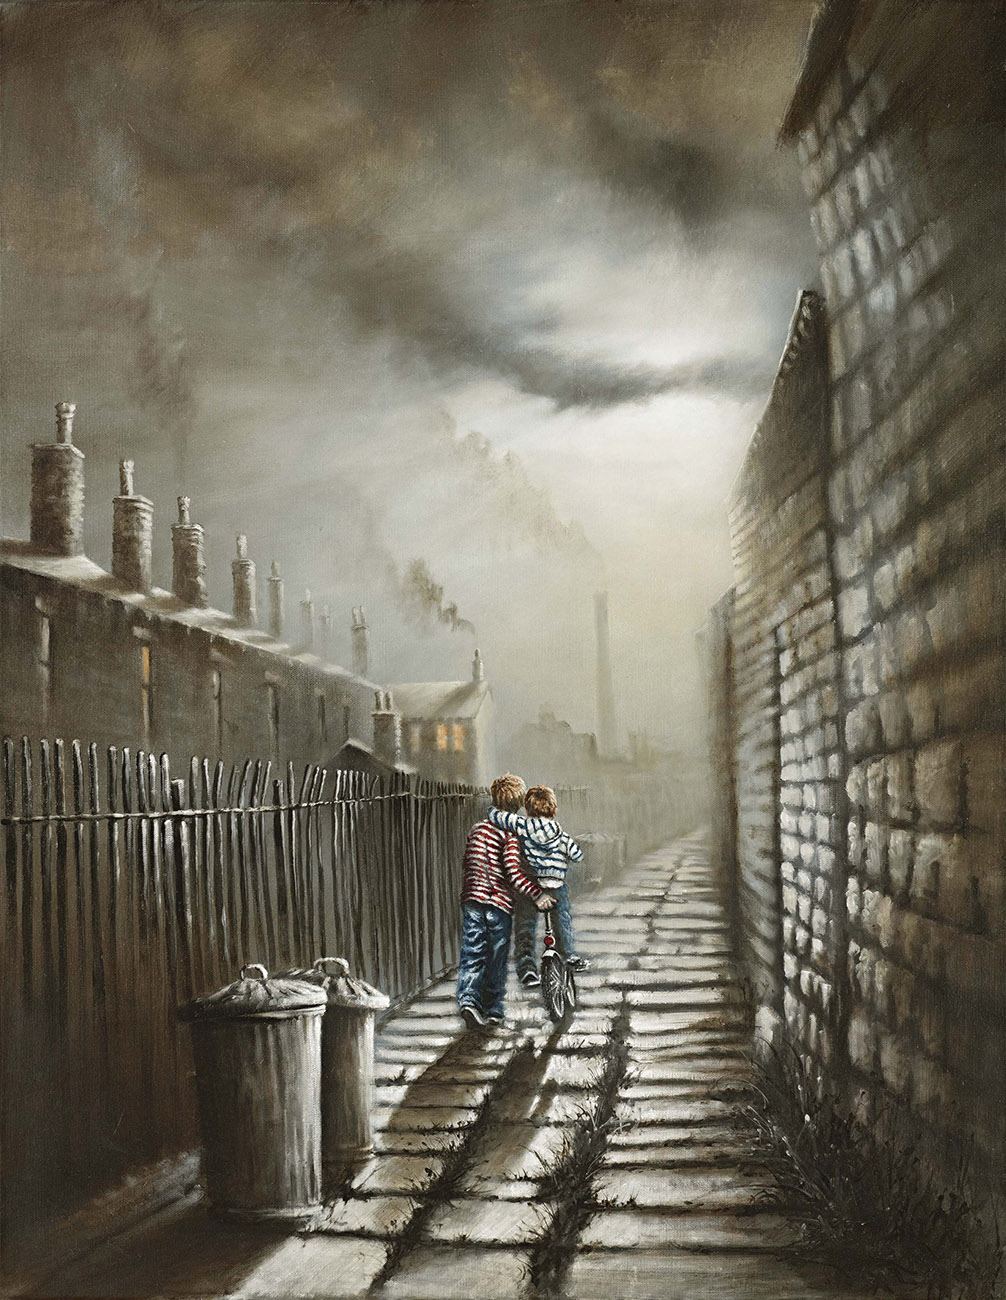 Gonna be a Bumpy Ride by Bob Barker